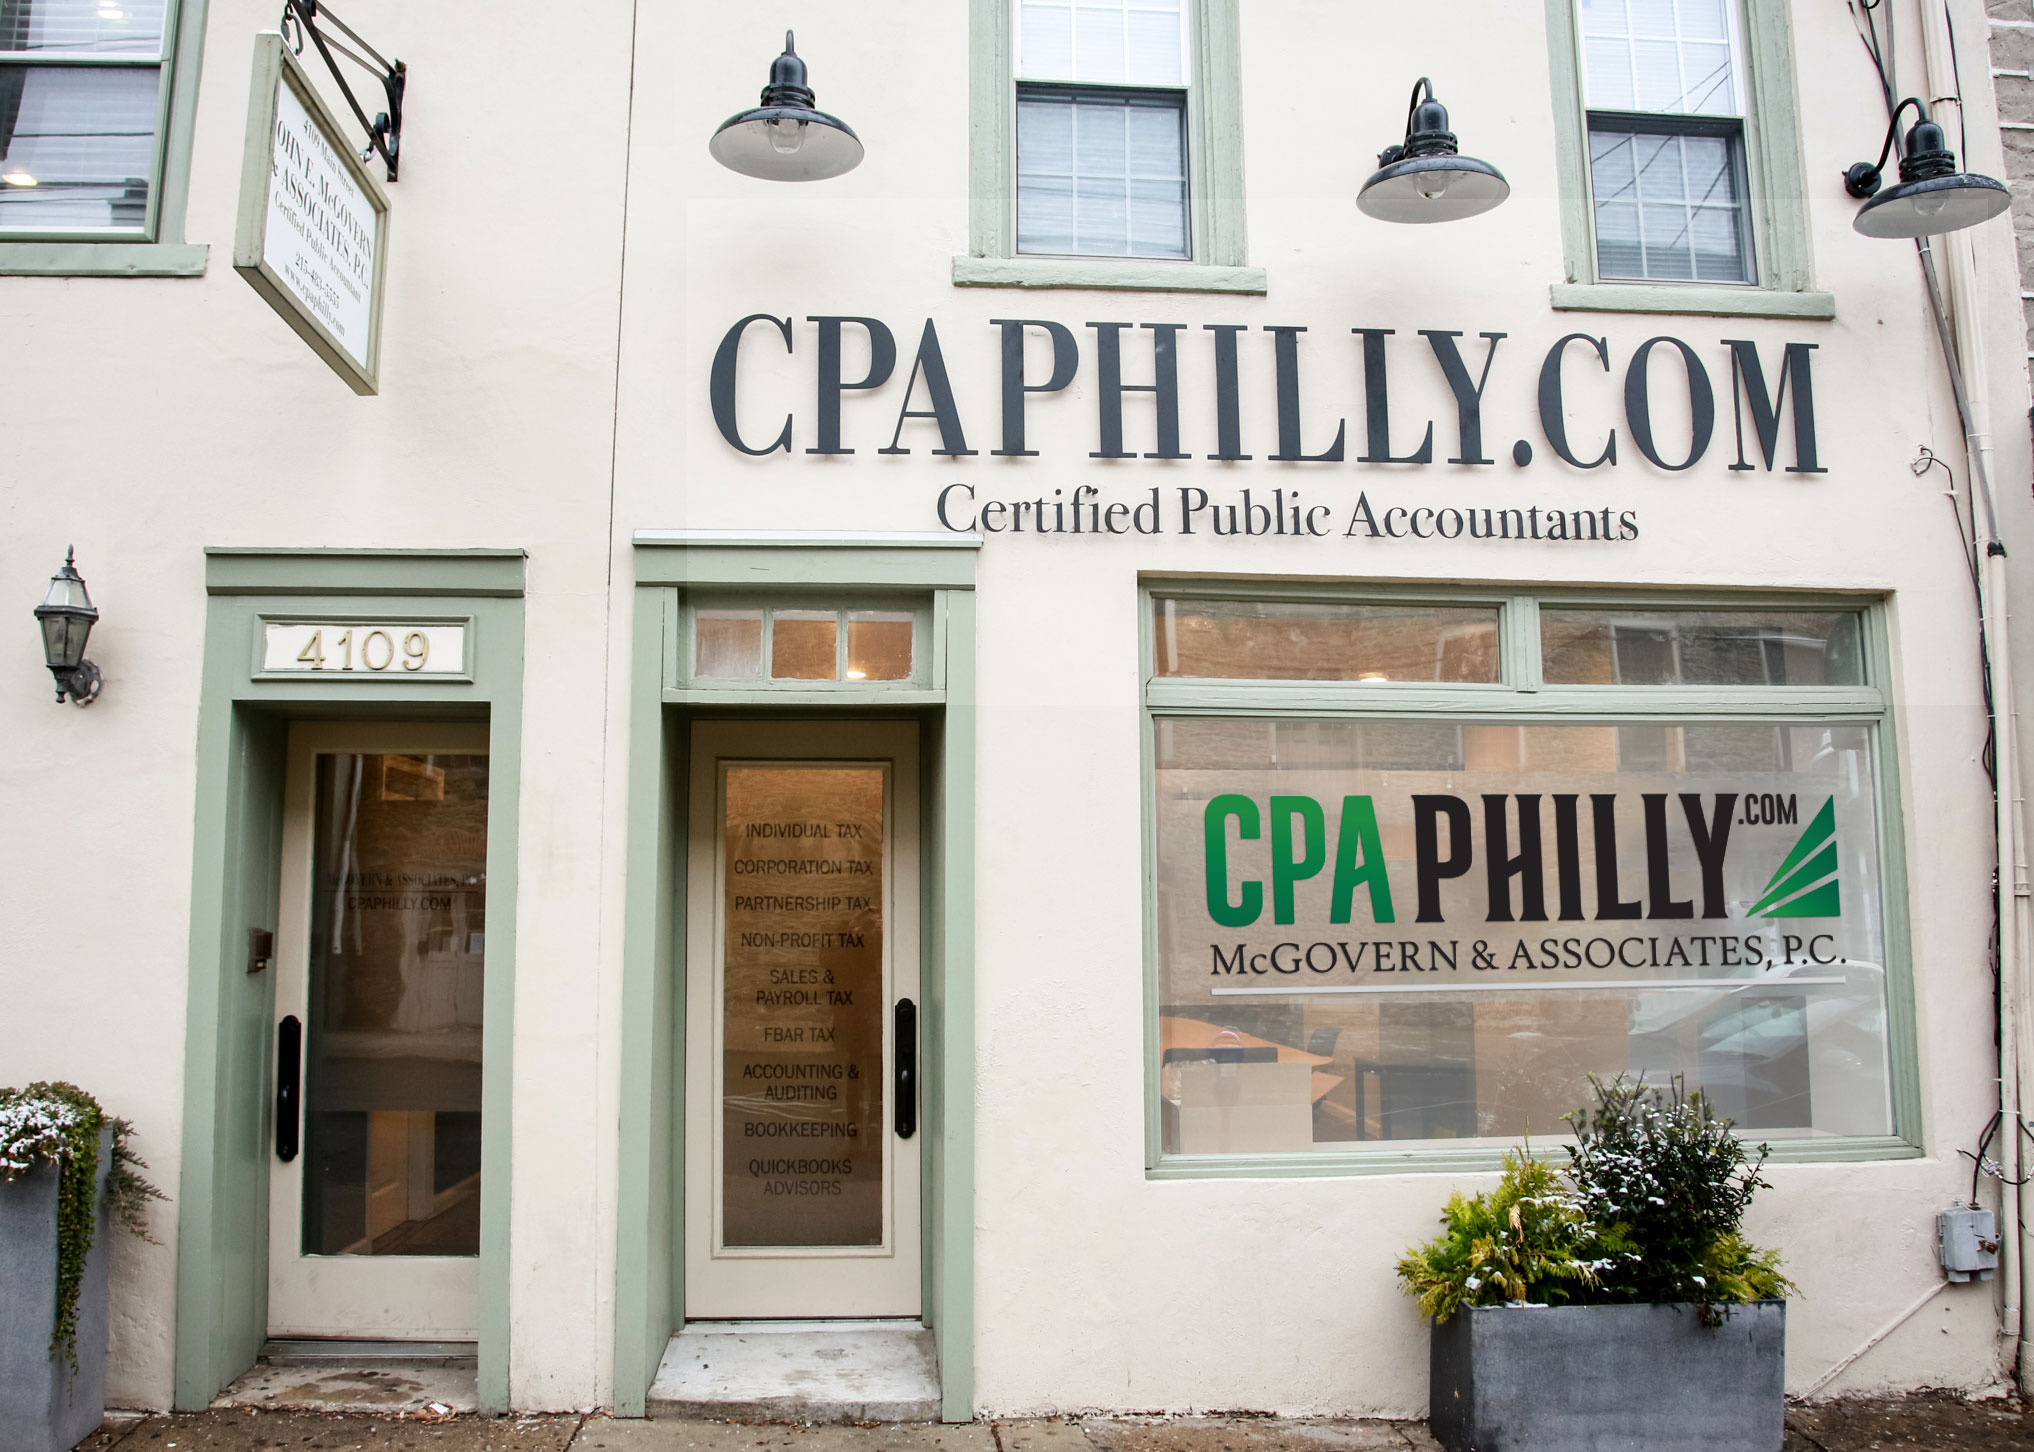 A Full service Certified Public Accounting Firm | CPAPhilly com